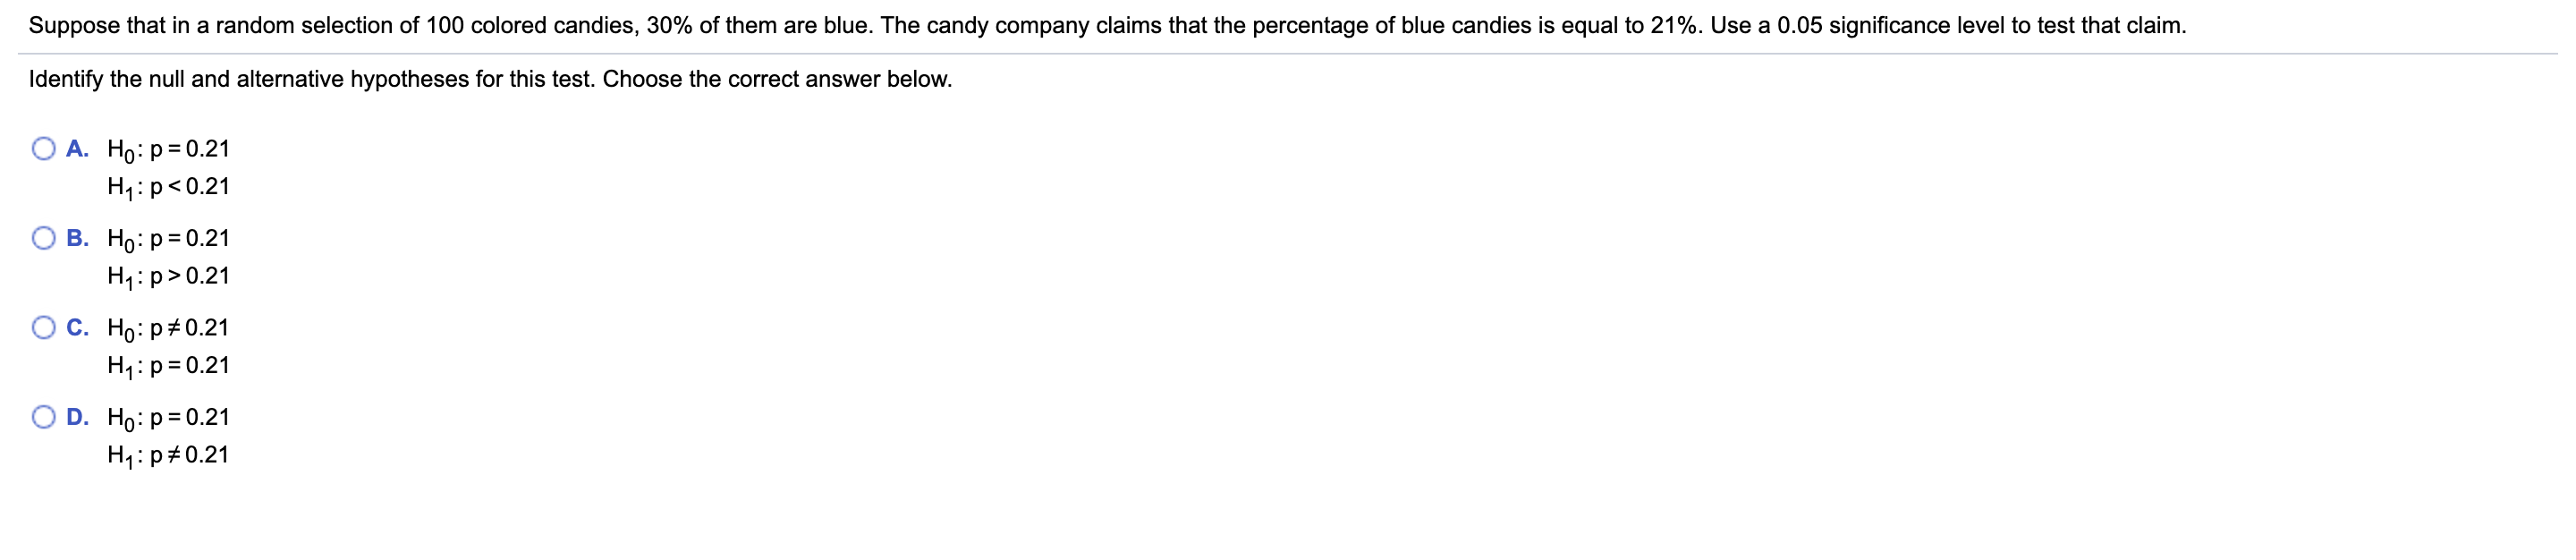 Suppose that in a random selection of 100 colored candies, 30% of them are blue. The candy company claims that the percentage of blue candies is equal to 21%. Use a 0.05 significance level to test that claim. Identify the null and alternative hypotheses for this test. Choose the correct answer below. А. Но: р30.21 H1:p<0.21 В. Но: Р3D0.21 H4:p>0.21 С. Но: р#0.21 H1:p= 0.21 D. Ho: p= 0.21 H1:p#0.21